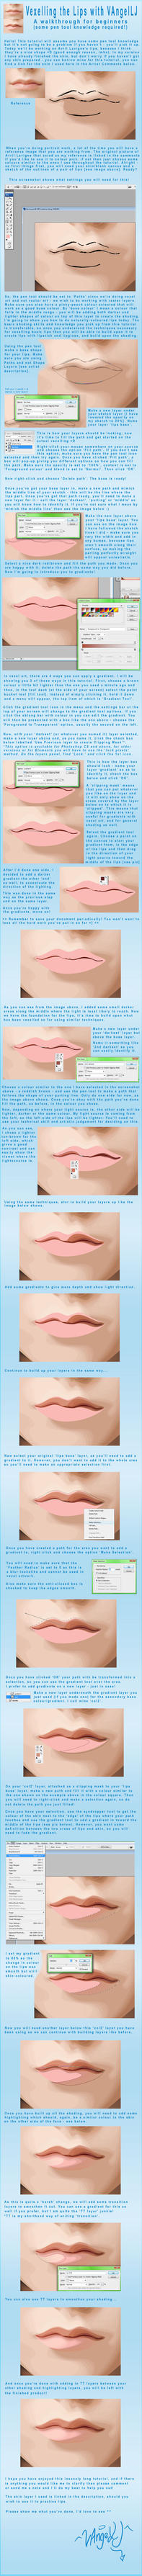 Vexelling the Lips: A Tutorial by VAngelLJ